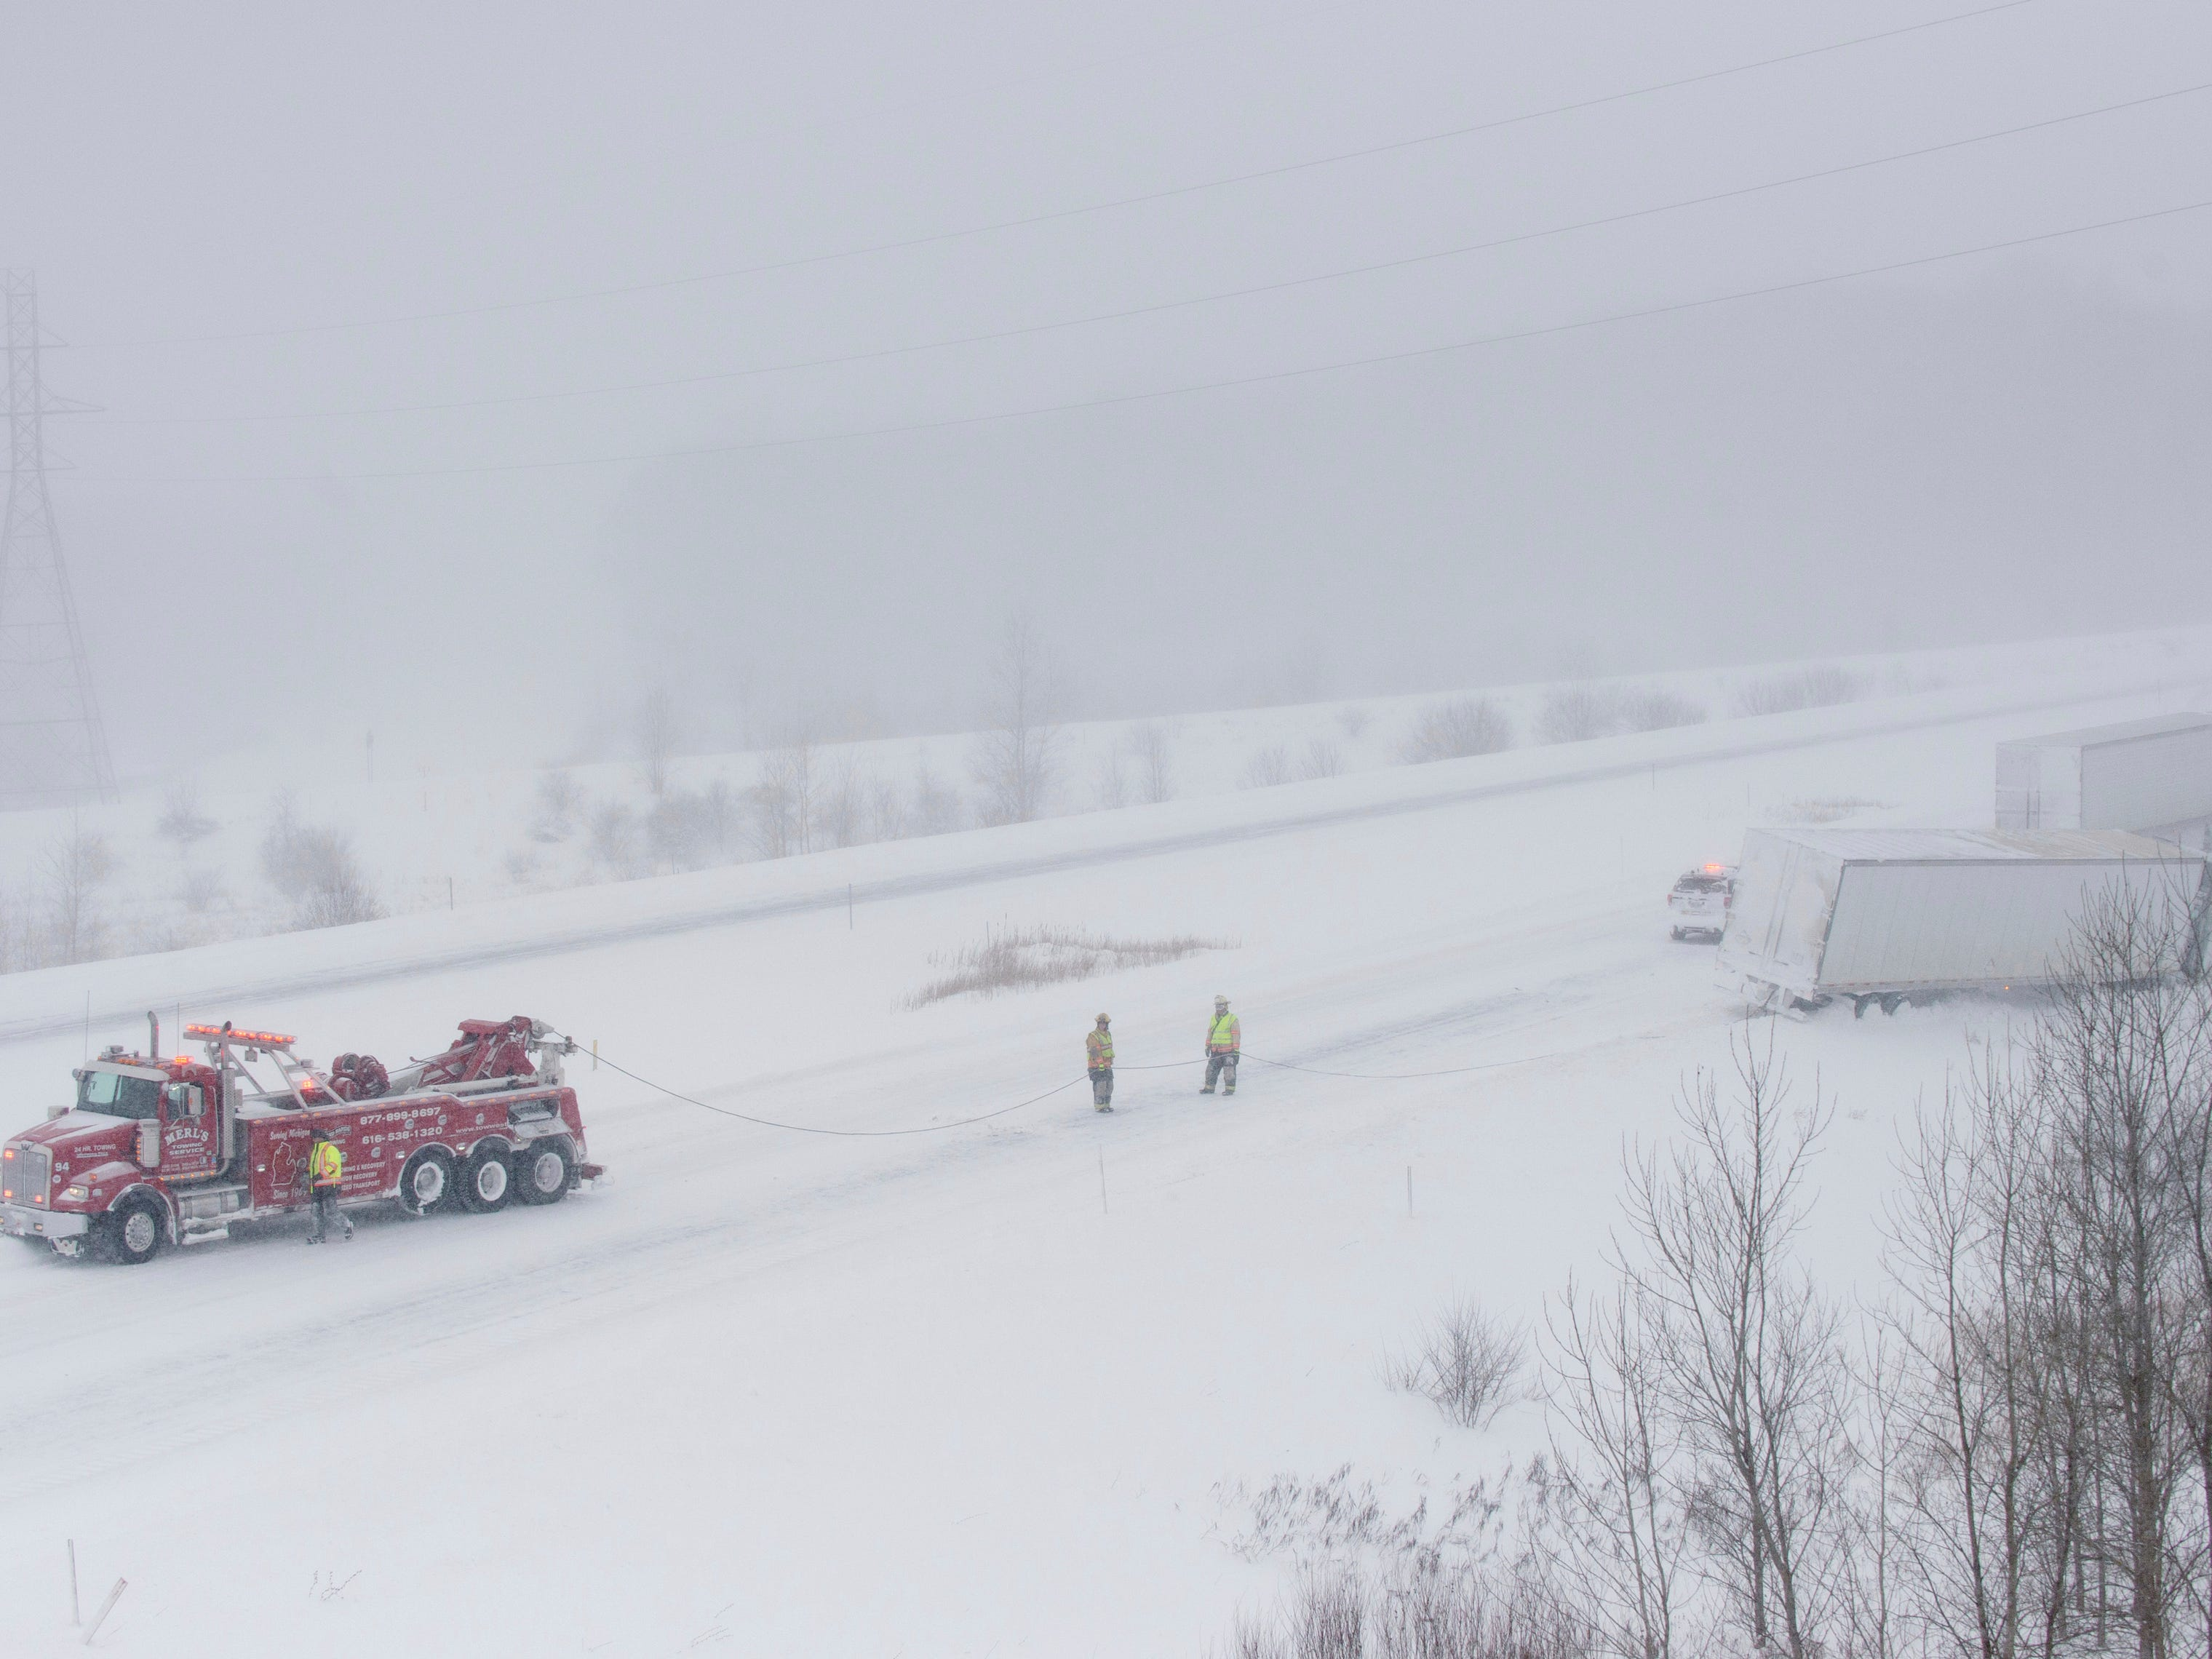 A Merl's Towing Service truck pulls a semi-trailer truck out of the snow Wednesday along M-6 near exit 1 outside Grandville.